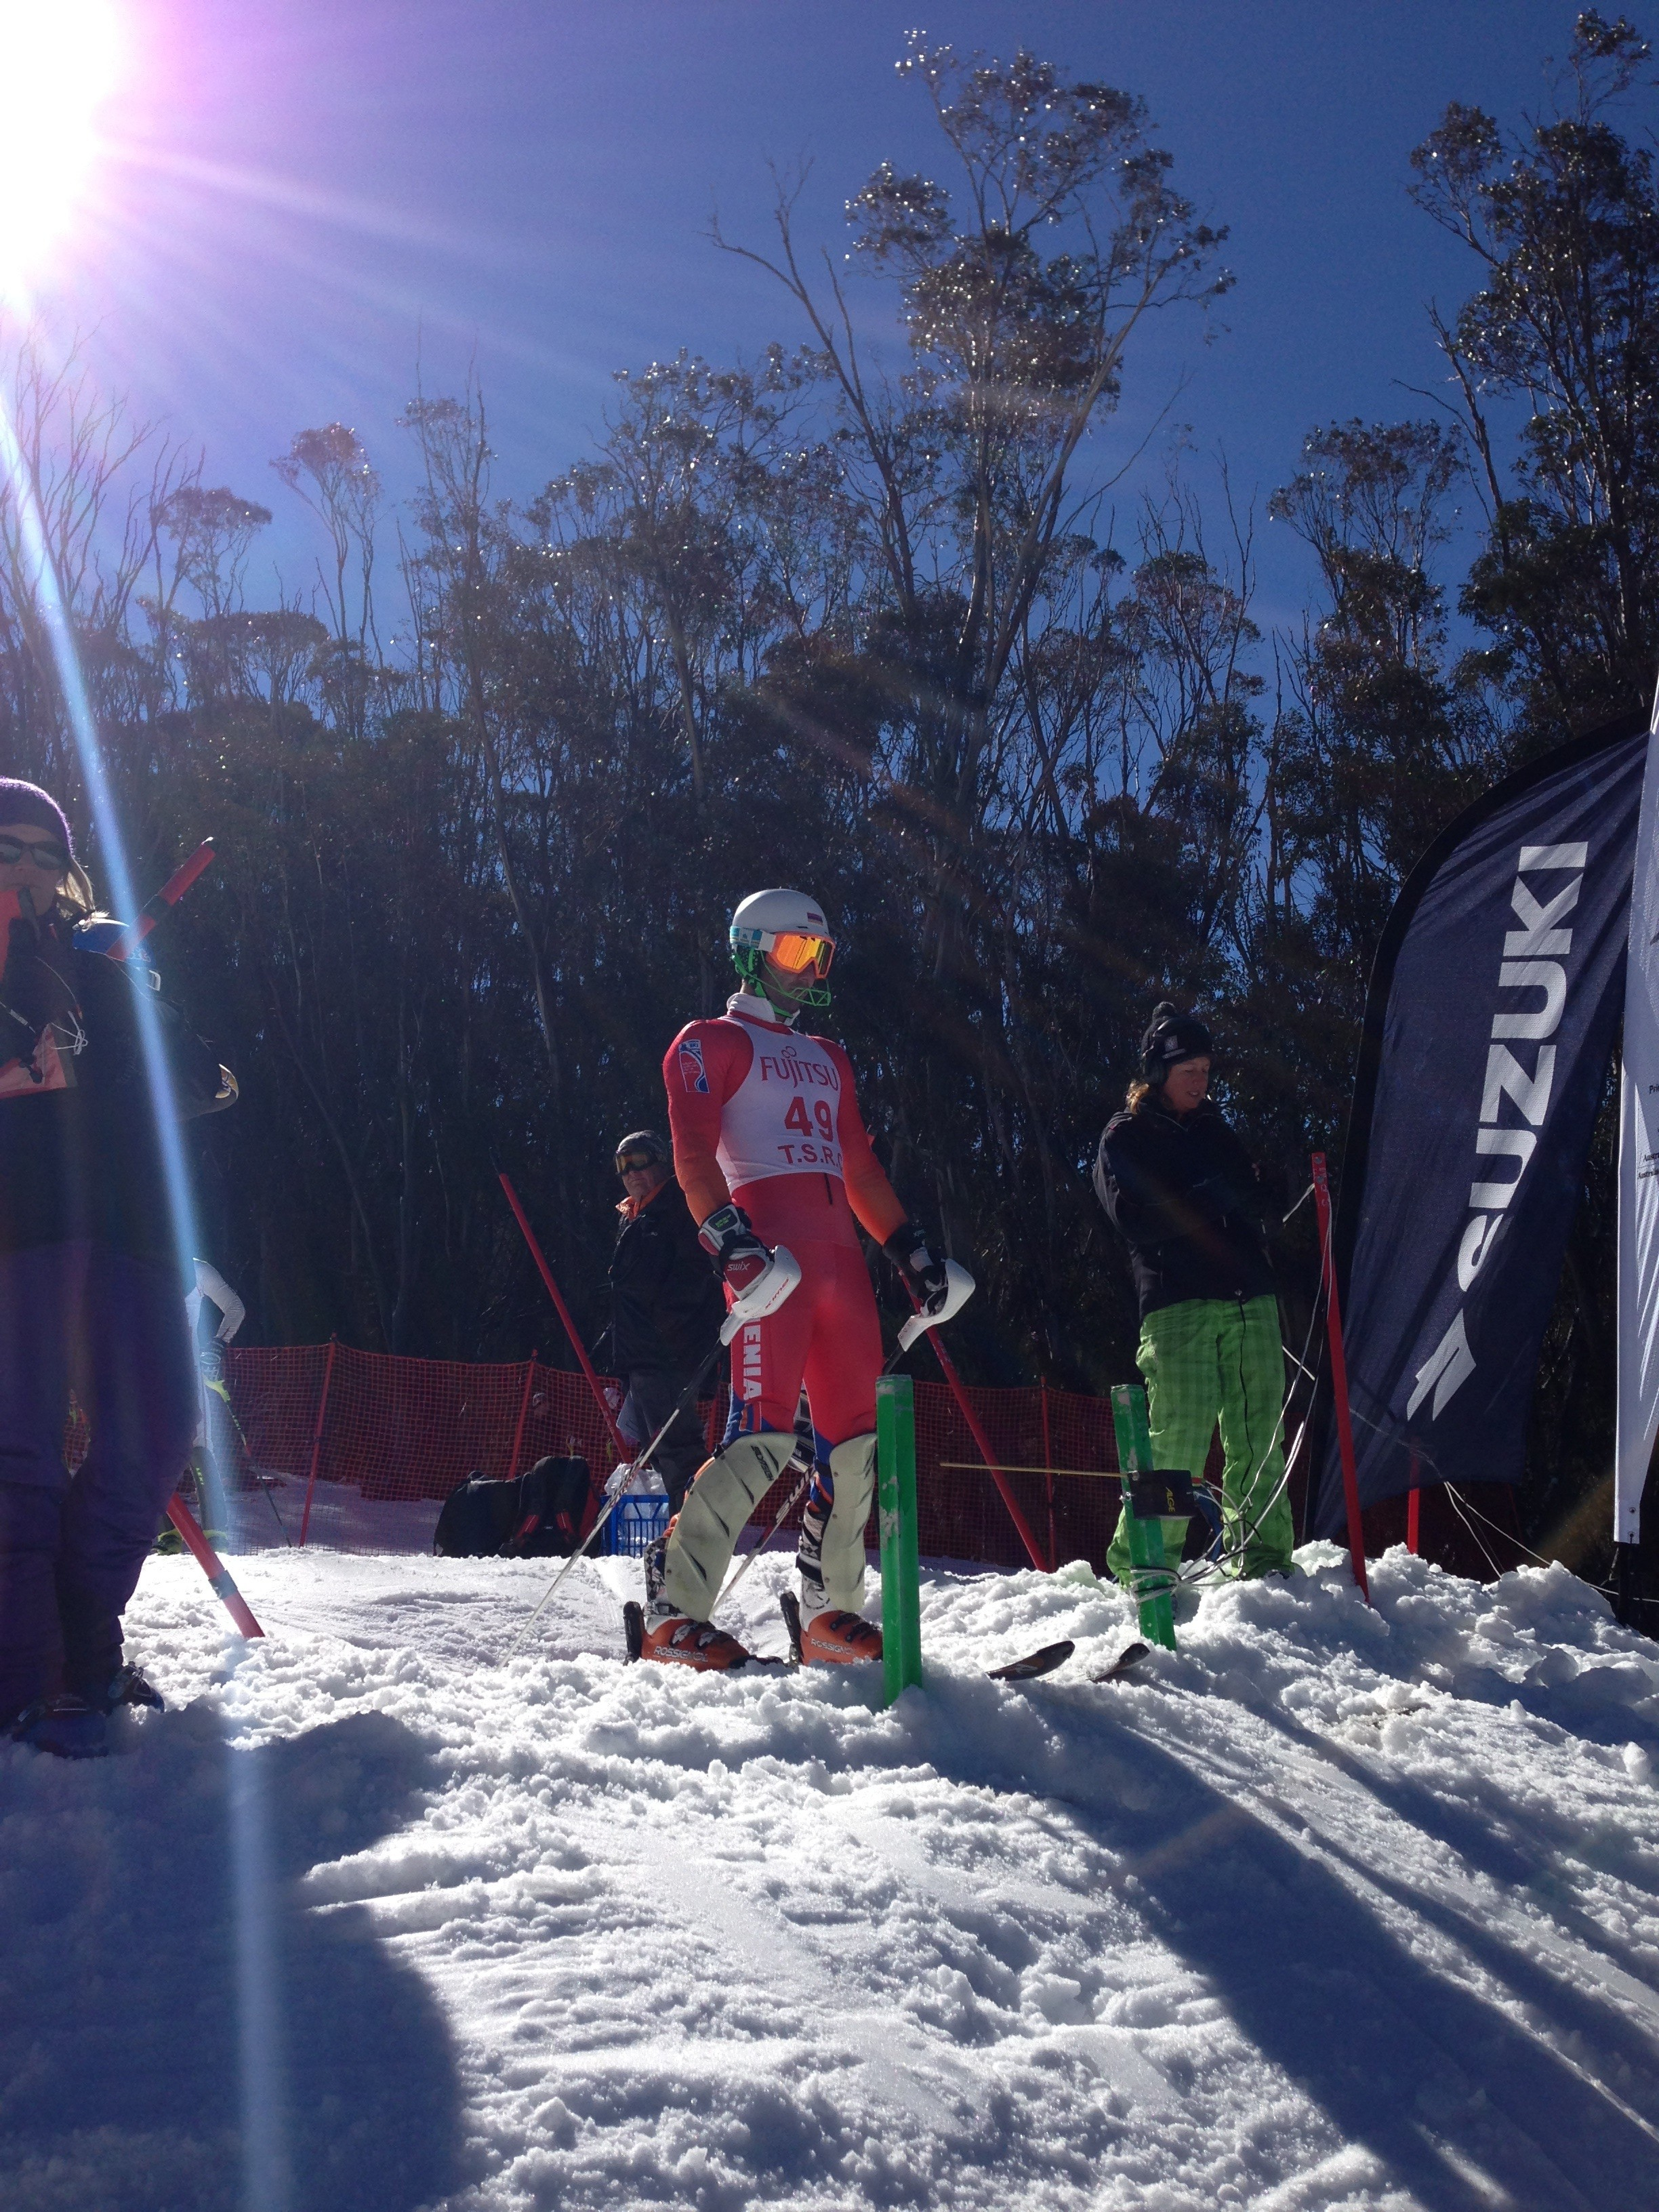 In the starting gate. FIS Australia-New Zealand Cup. Thredbo, AUS. August 16, 2013.